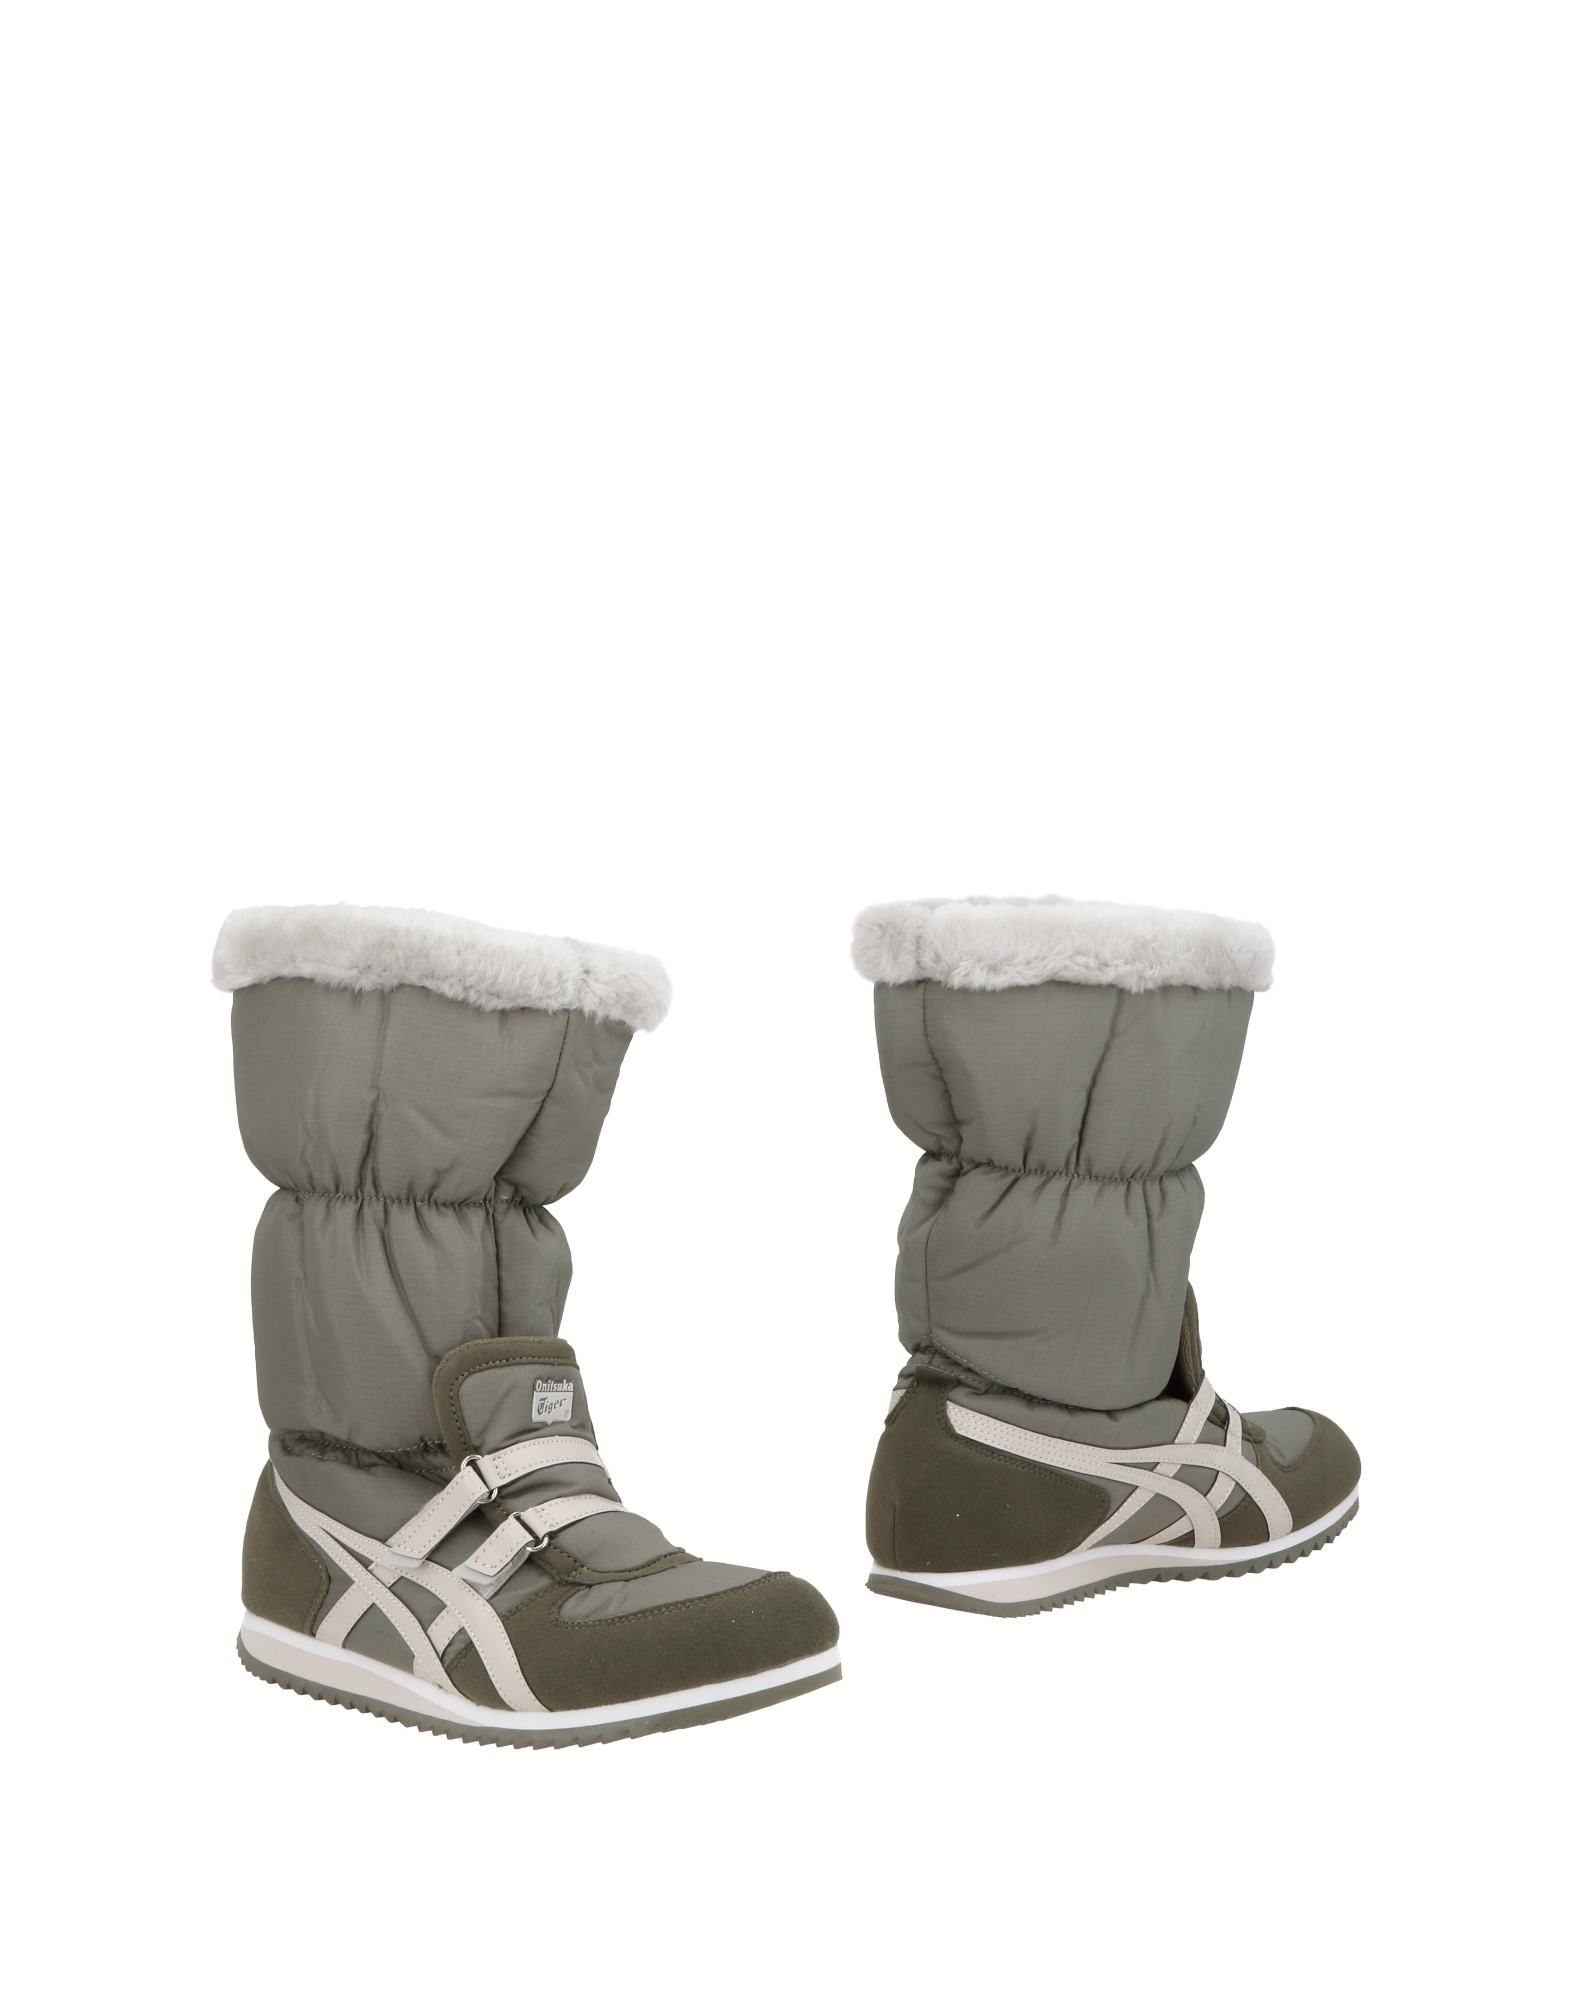 Onitsuka Tiger Boots Boots - Women Onitsuka Tiger Boots Boots online on  United Kingdom - 11497557AS ecd412